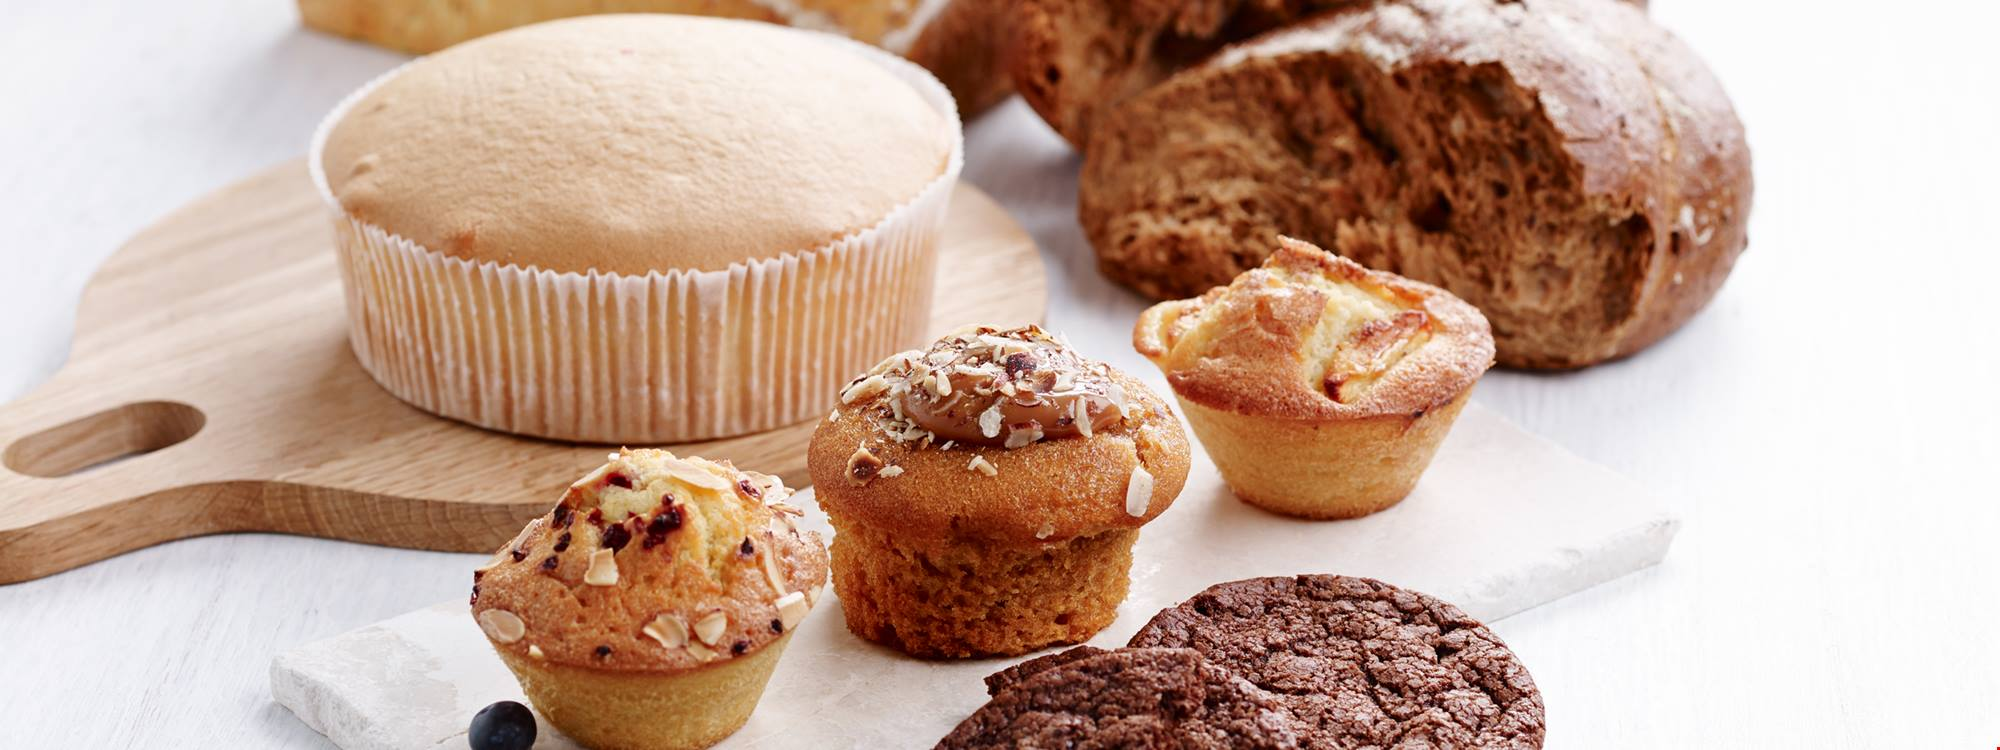 Whey-based solutions for the bakery industry